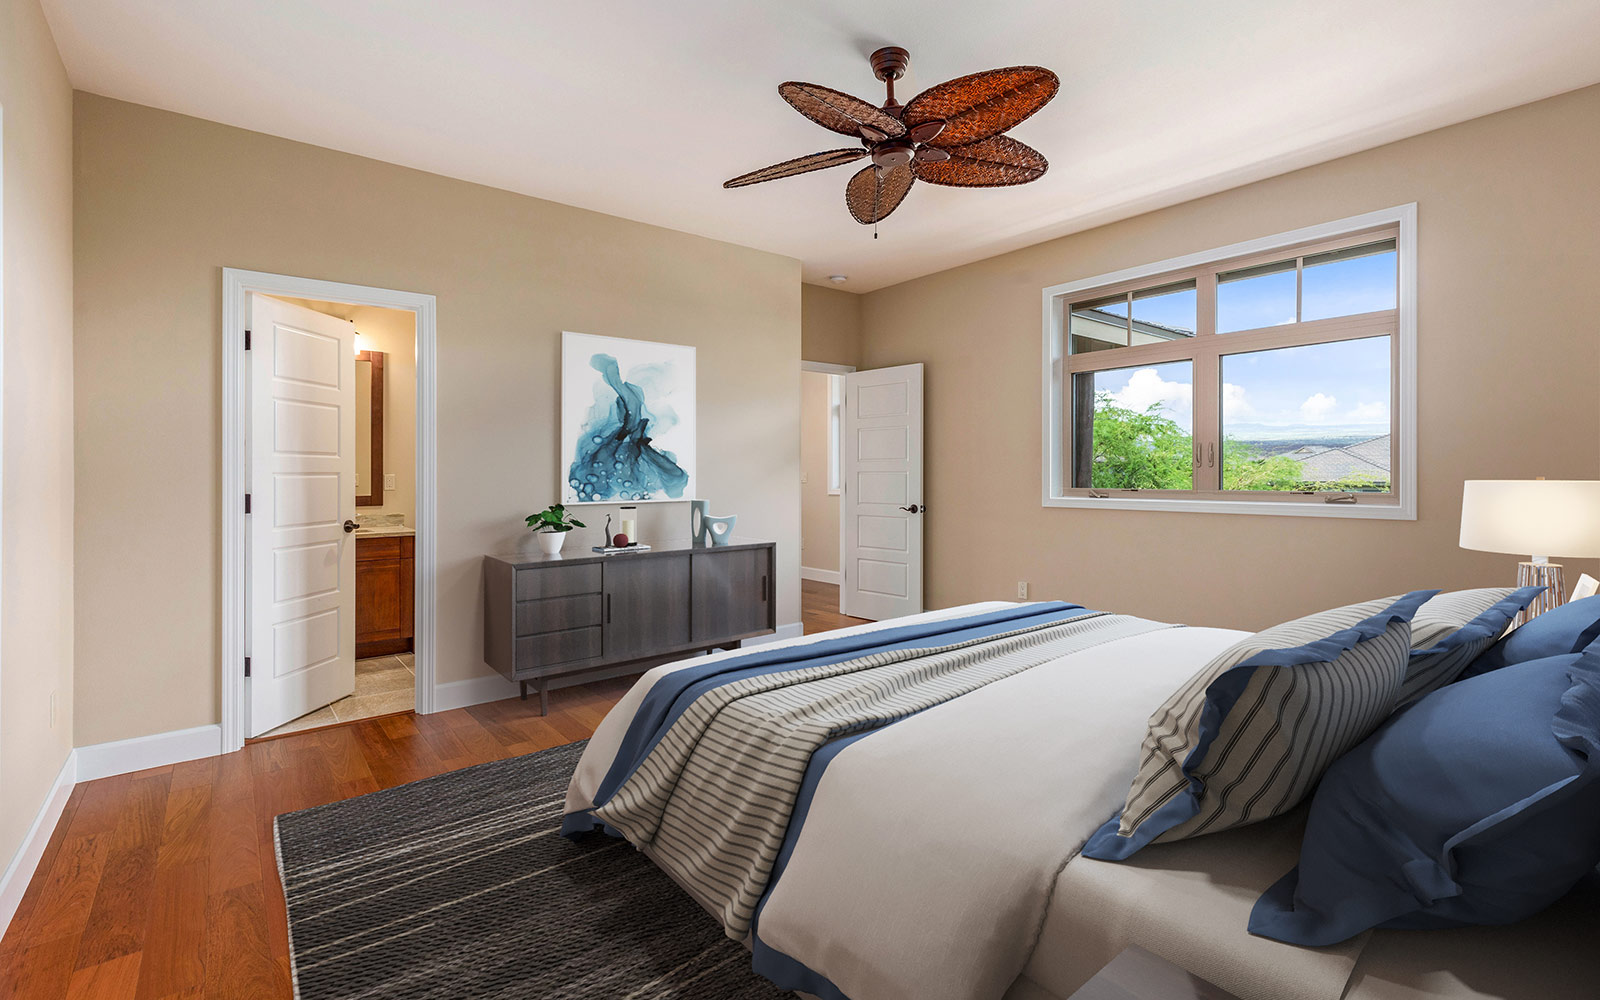 bedroom-new-home-mahina-plan-4-kamilo-at-mauna-lani-big-island-brookfield-residential